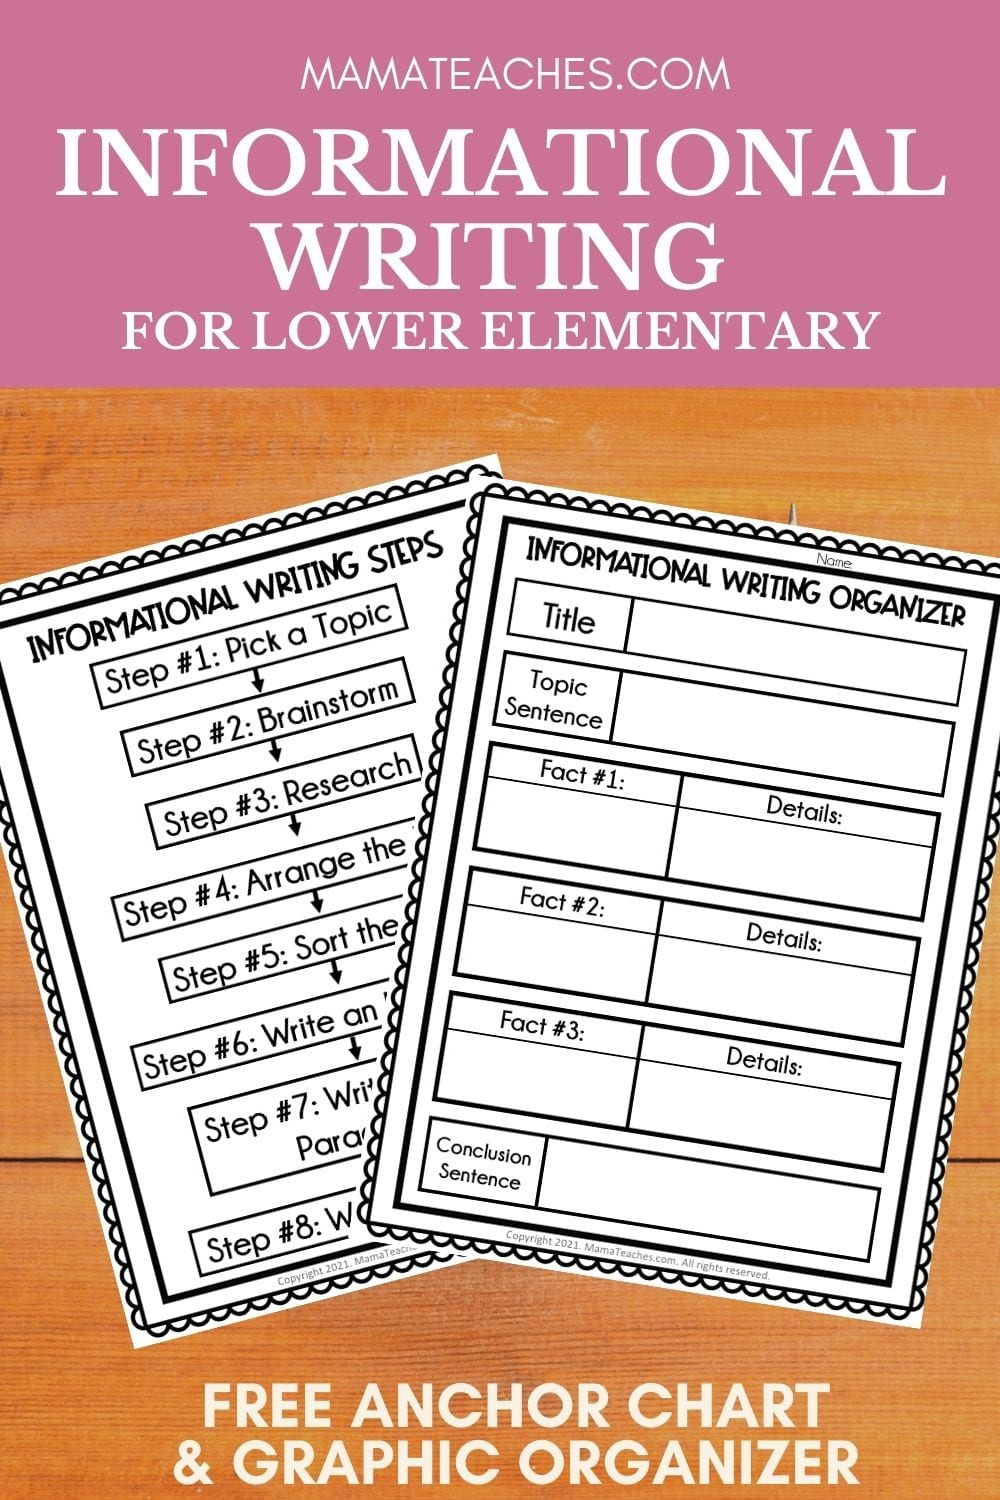 Free Informational Writing Anchor Chart and Writing Graphic Organizer for Lower Elementary